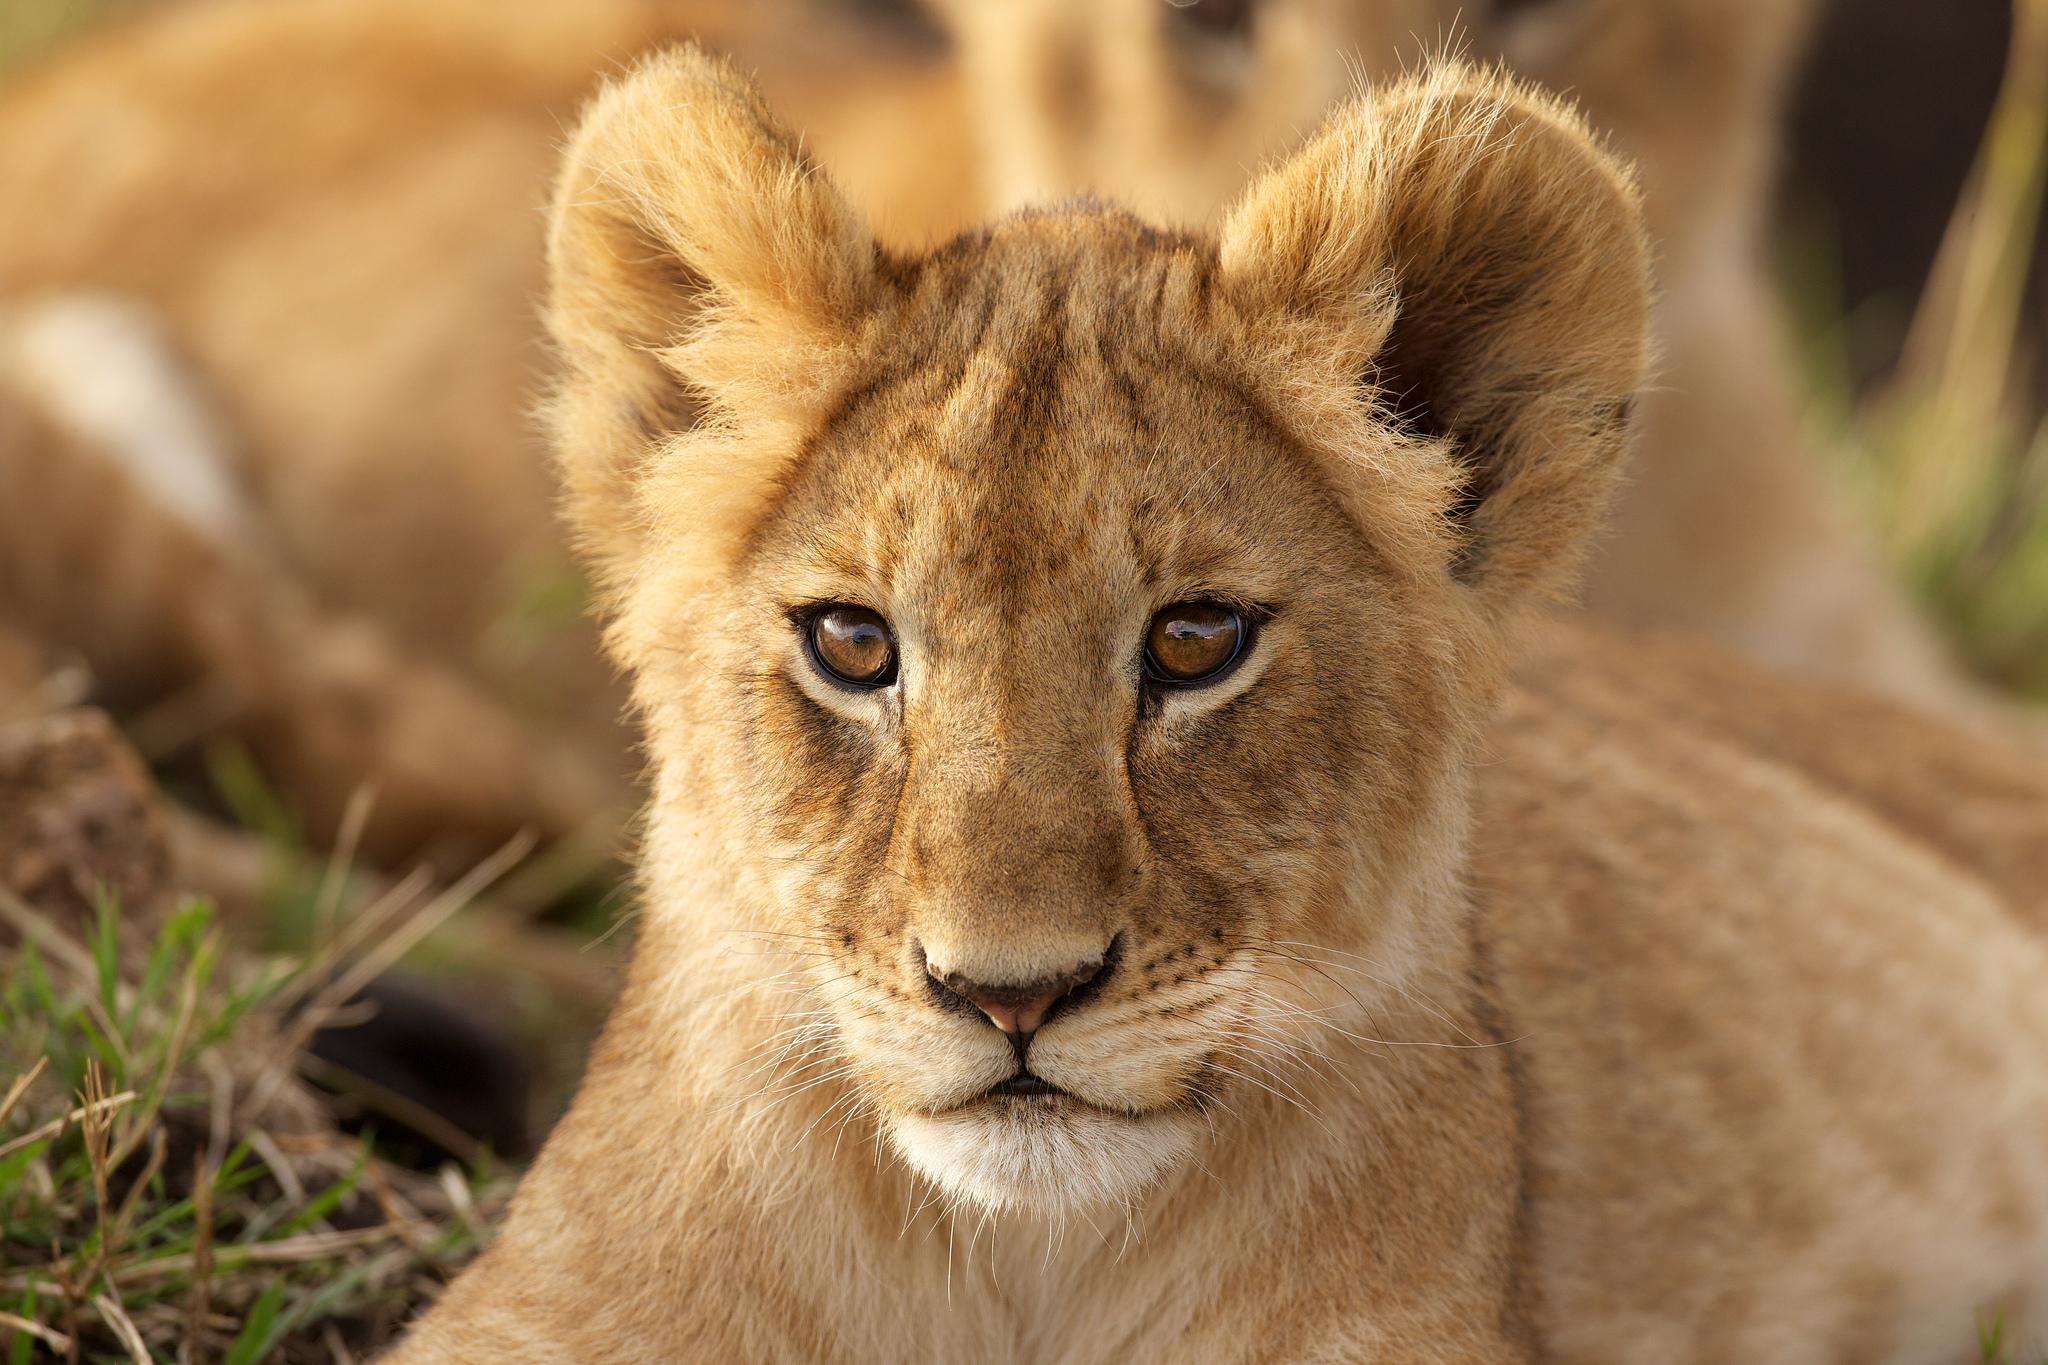 127244 download wallpaper Animals, Lion, Young, Joey, Predator, Muzzle screensavers and pictures for free